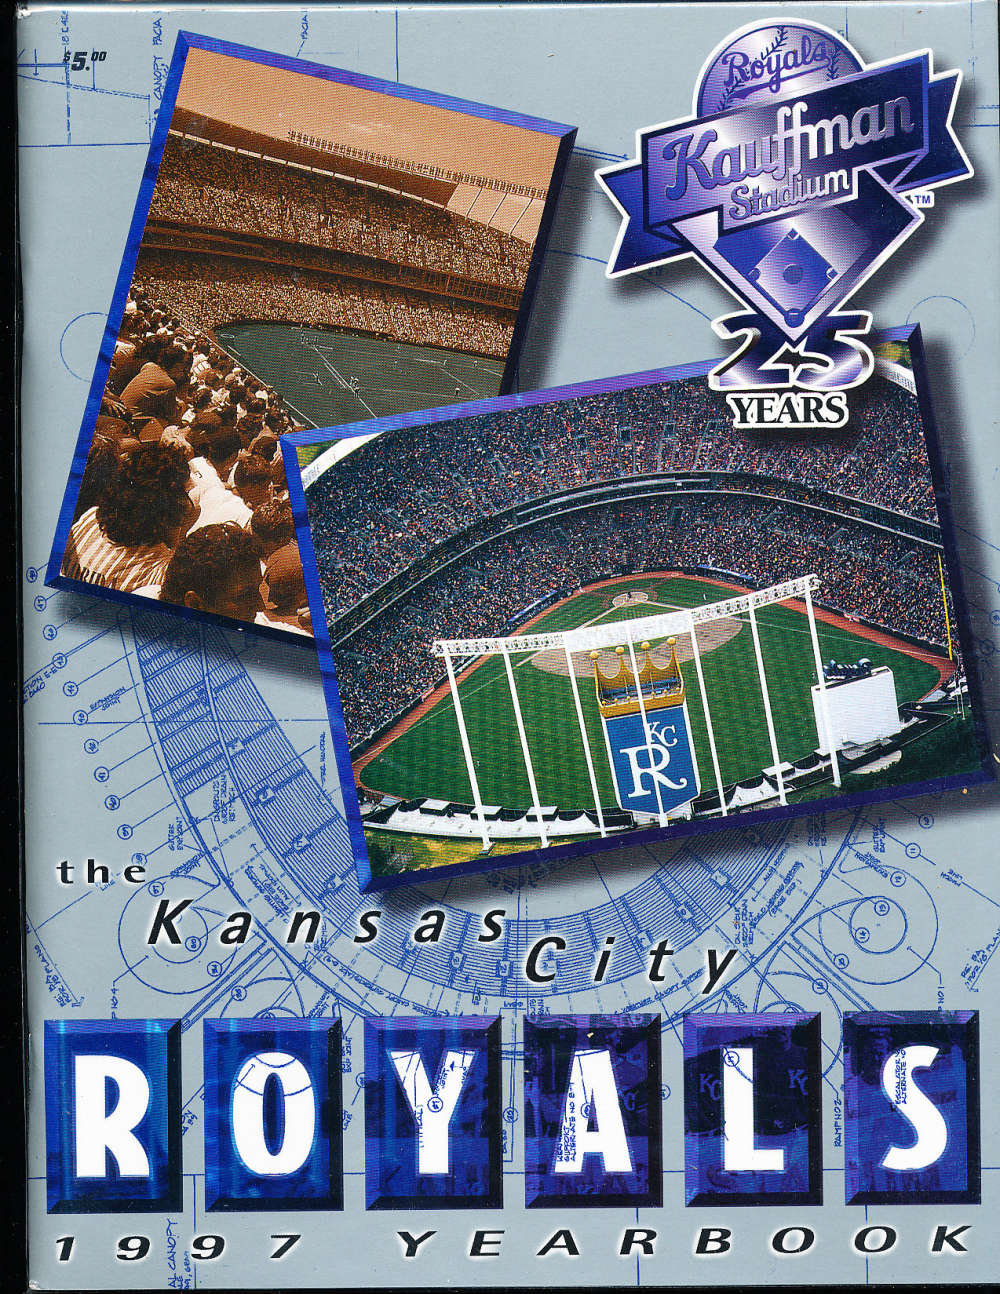 1997 Kansas city Royals baseball yearbook